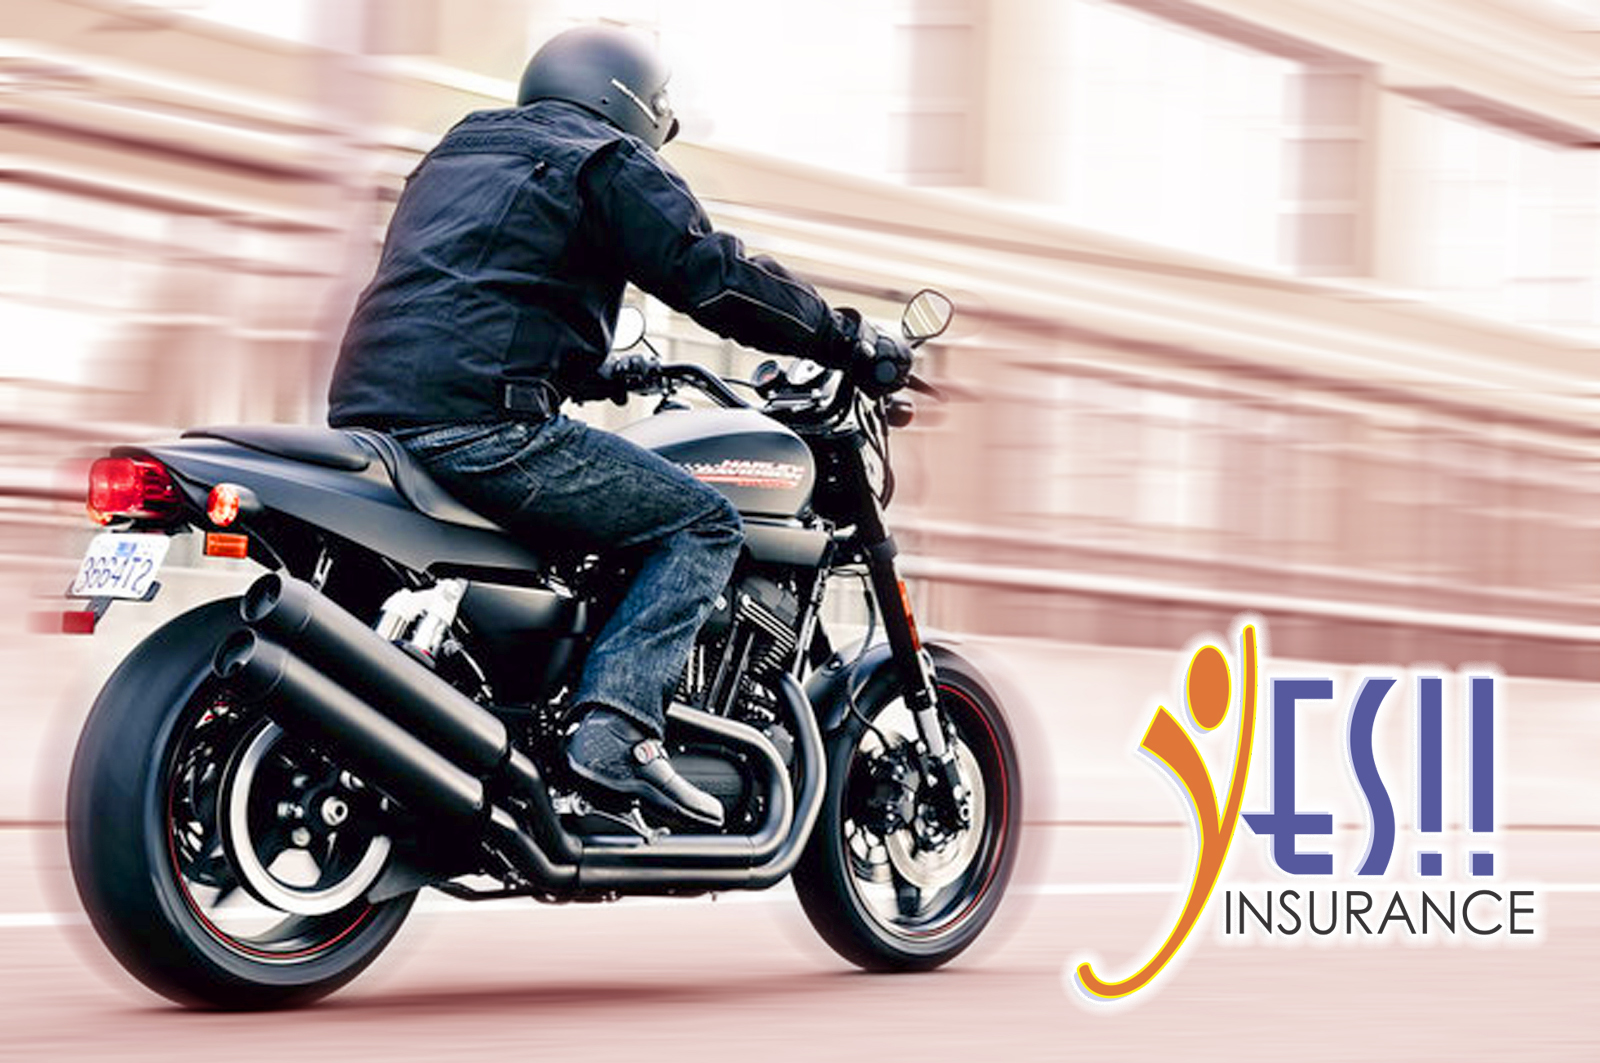 Motorcycle Insurance Auto Insurance In Gainesville